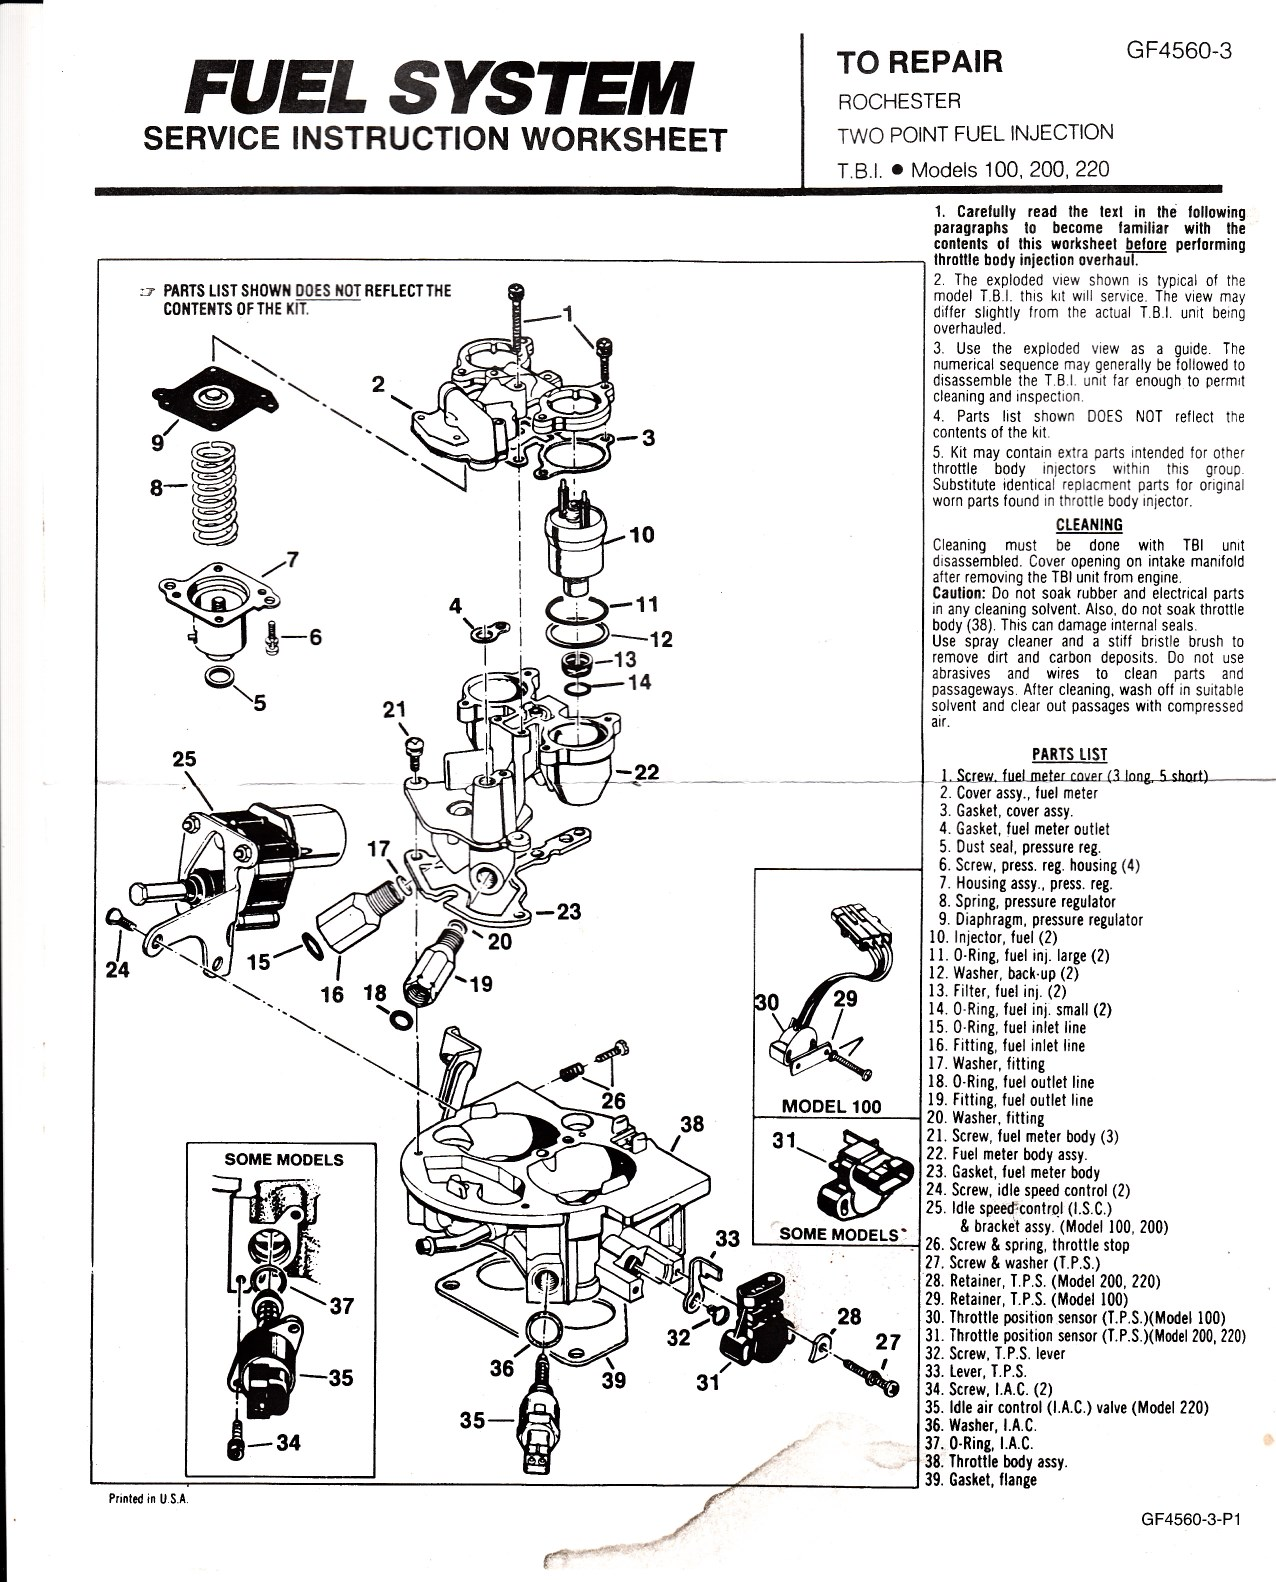 2000cc vw engine diagram